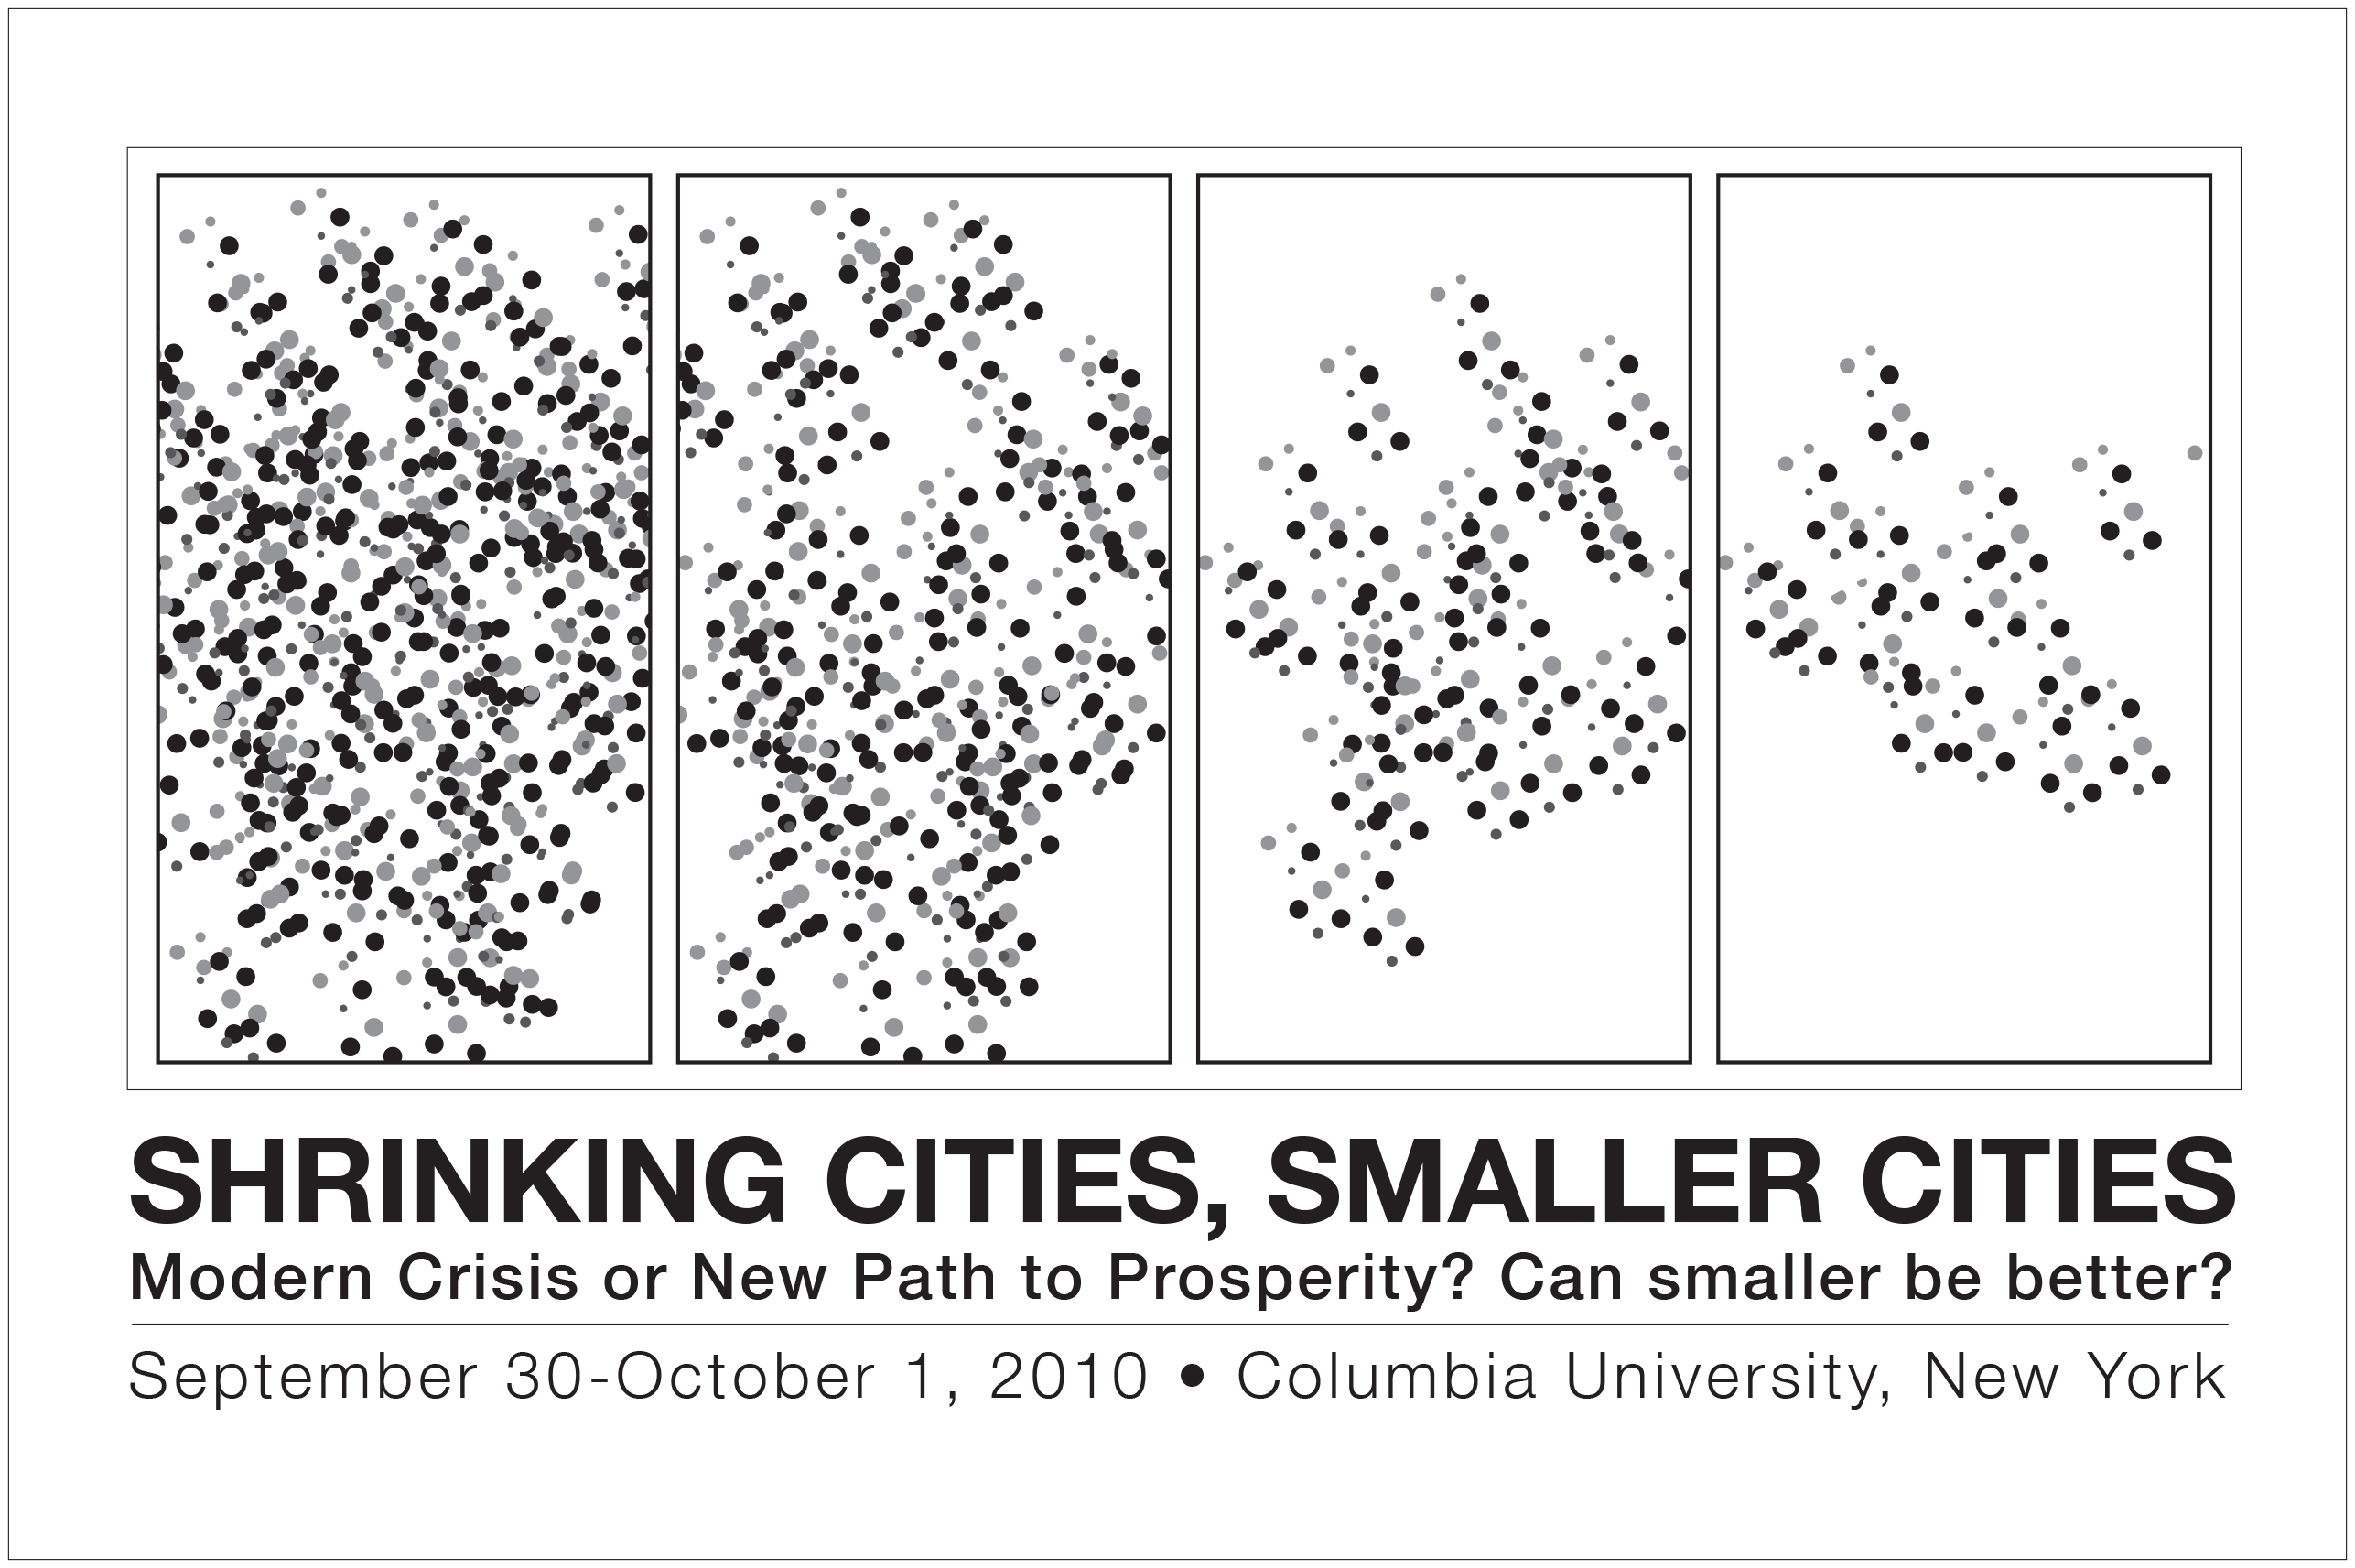 Shrinking Cities, Smaller Cities: Modern Crisis or New